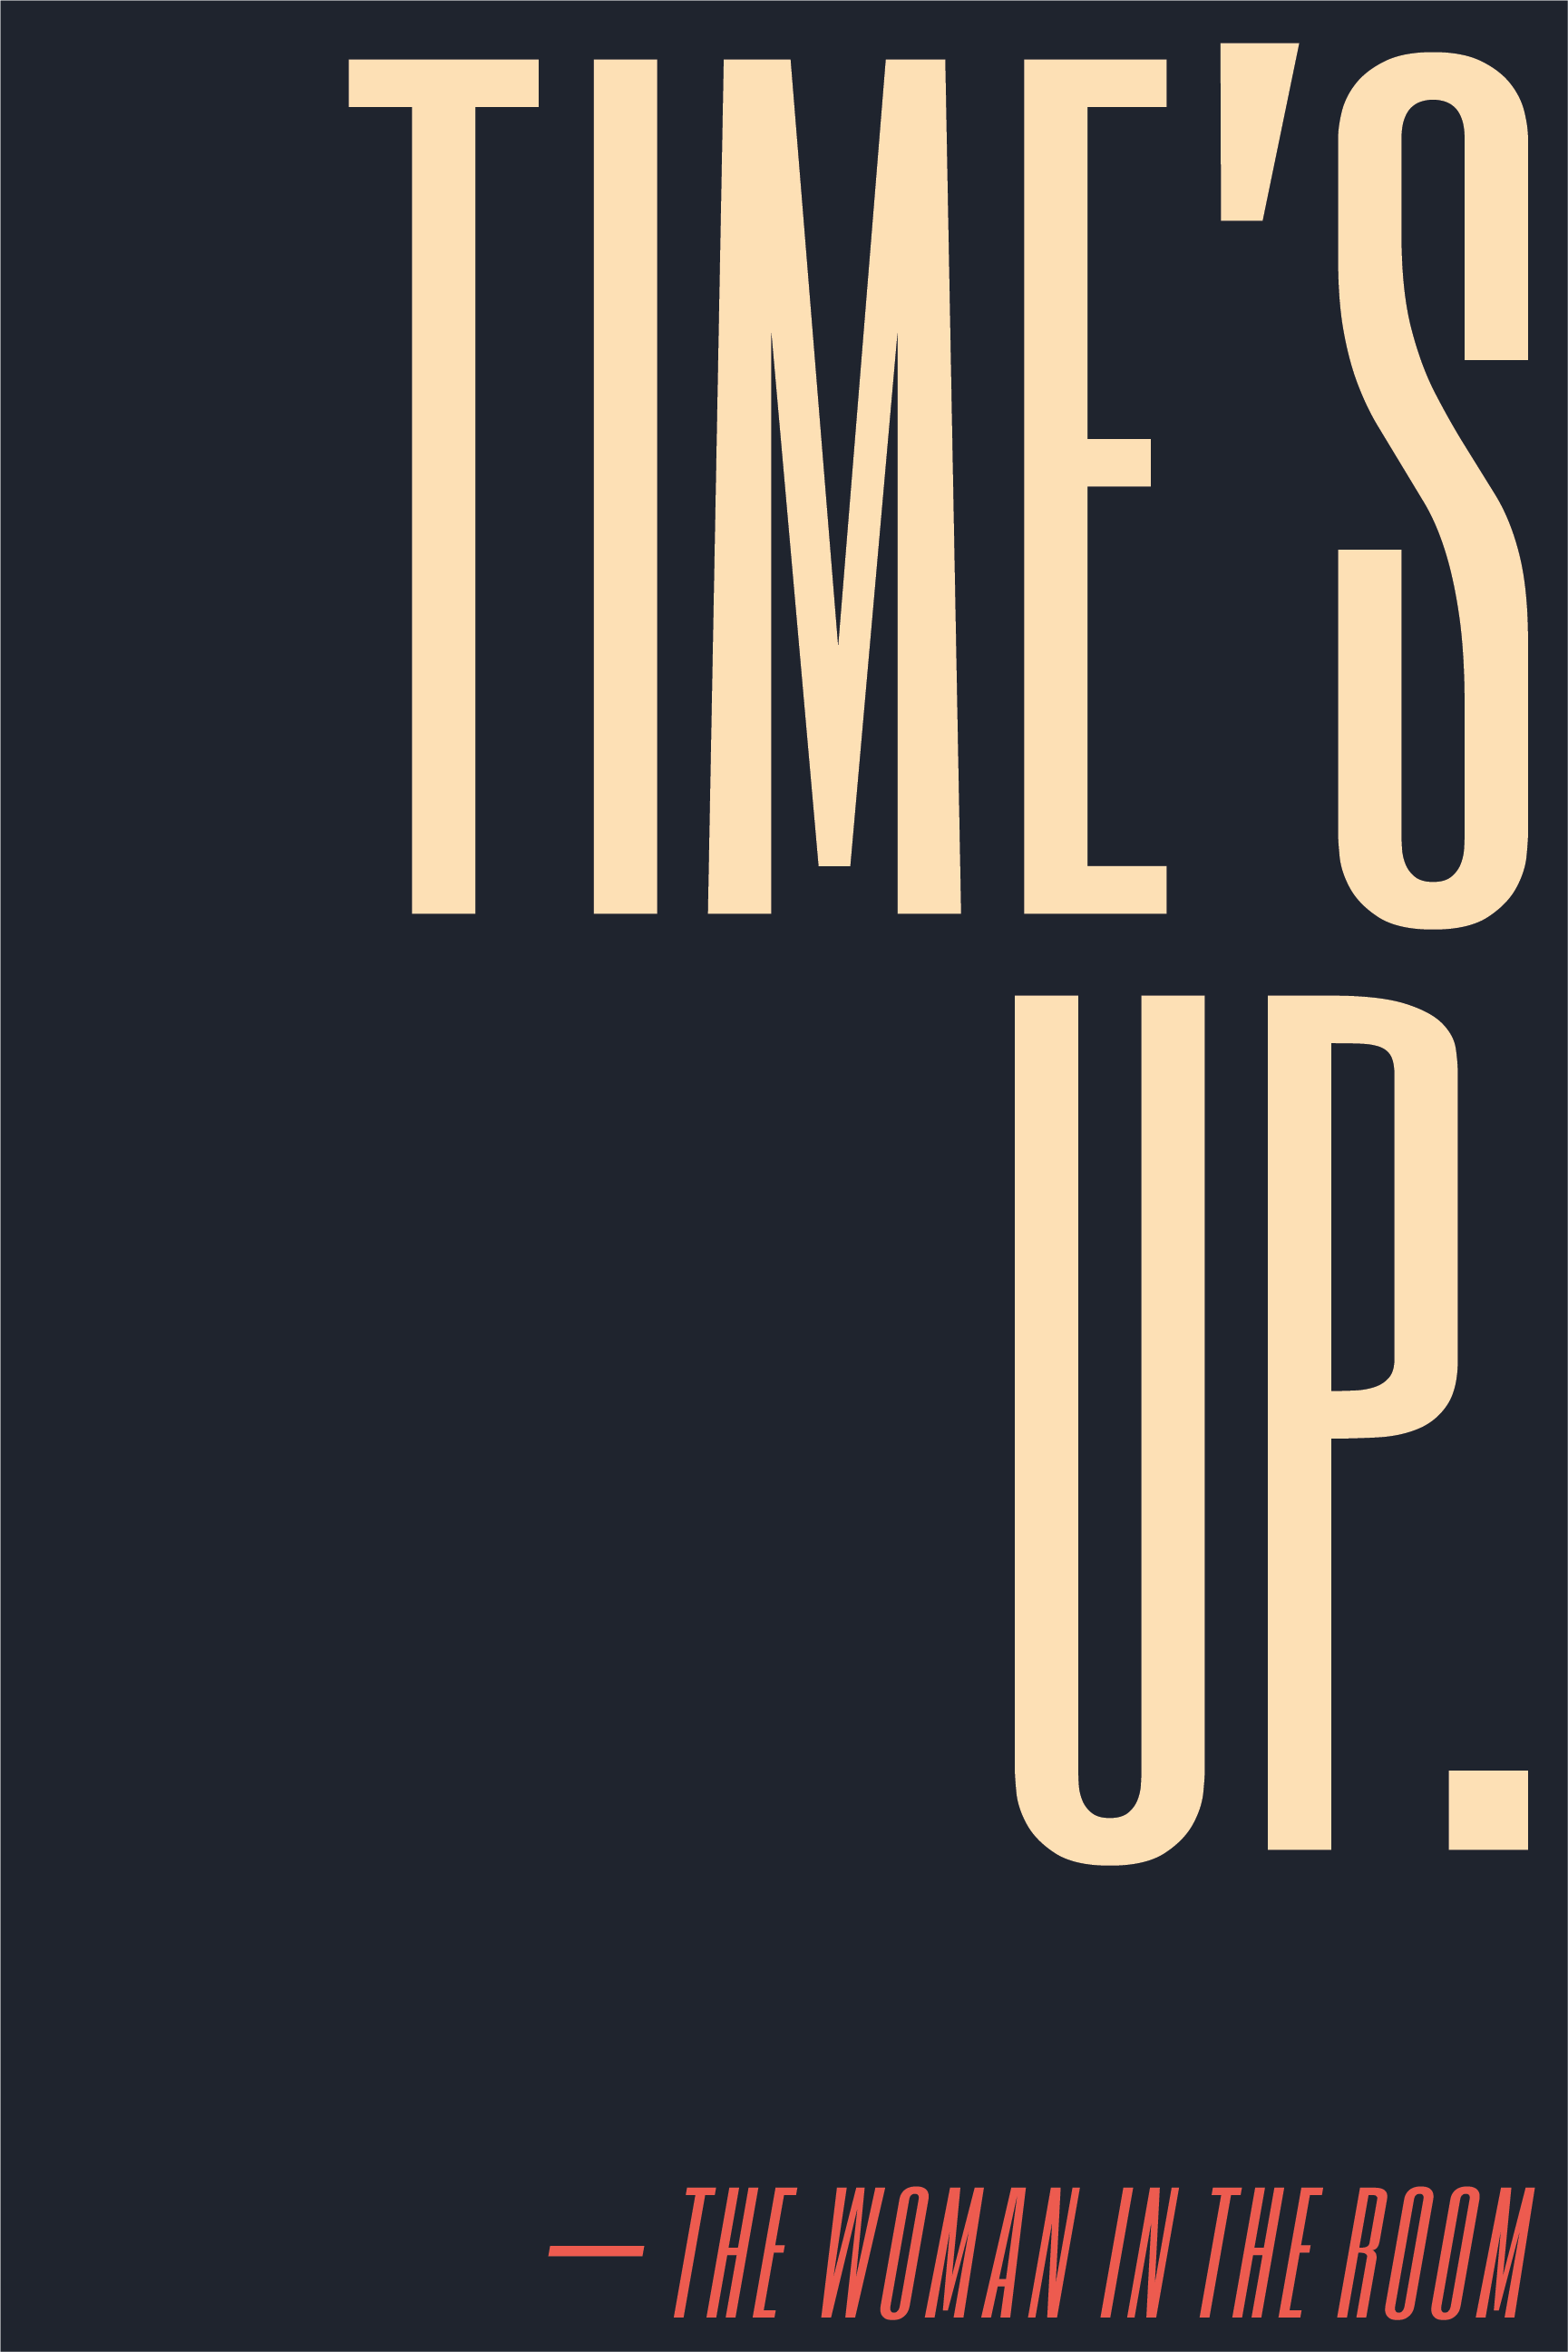 Time's up.